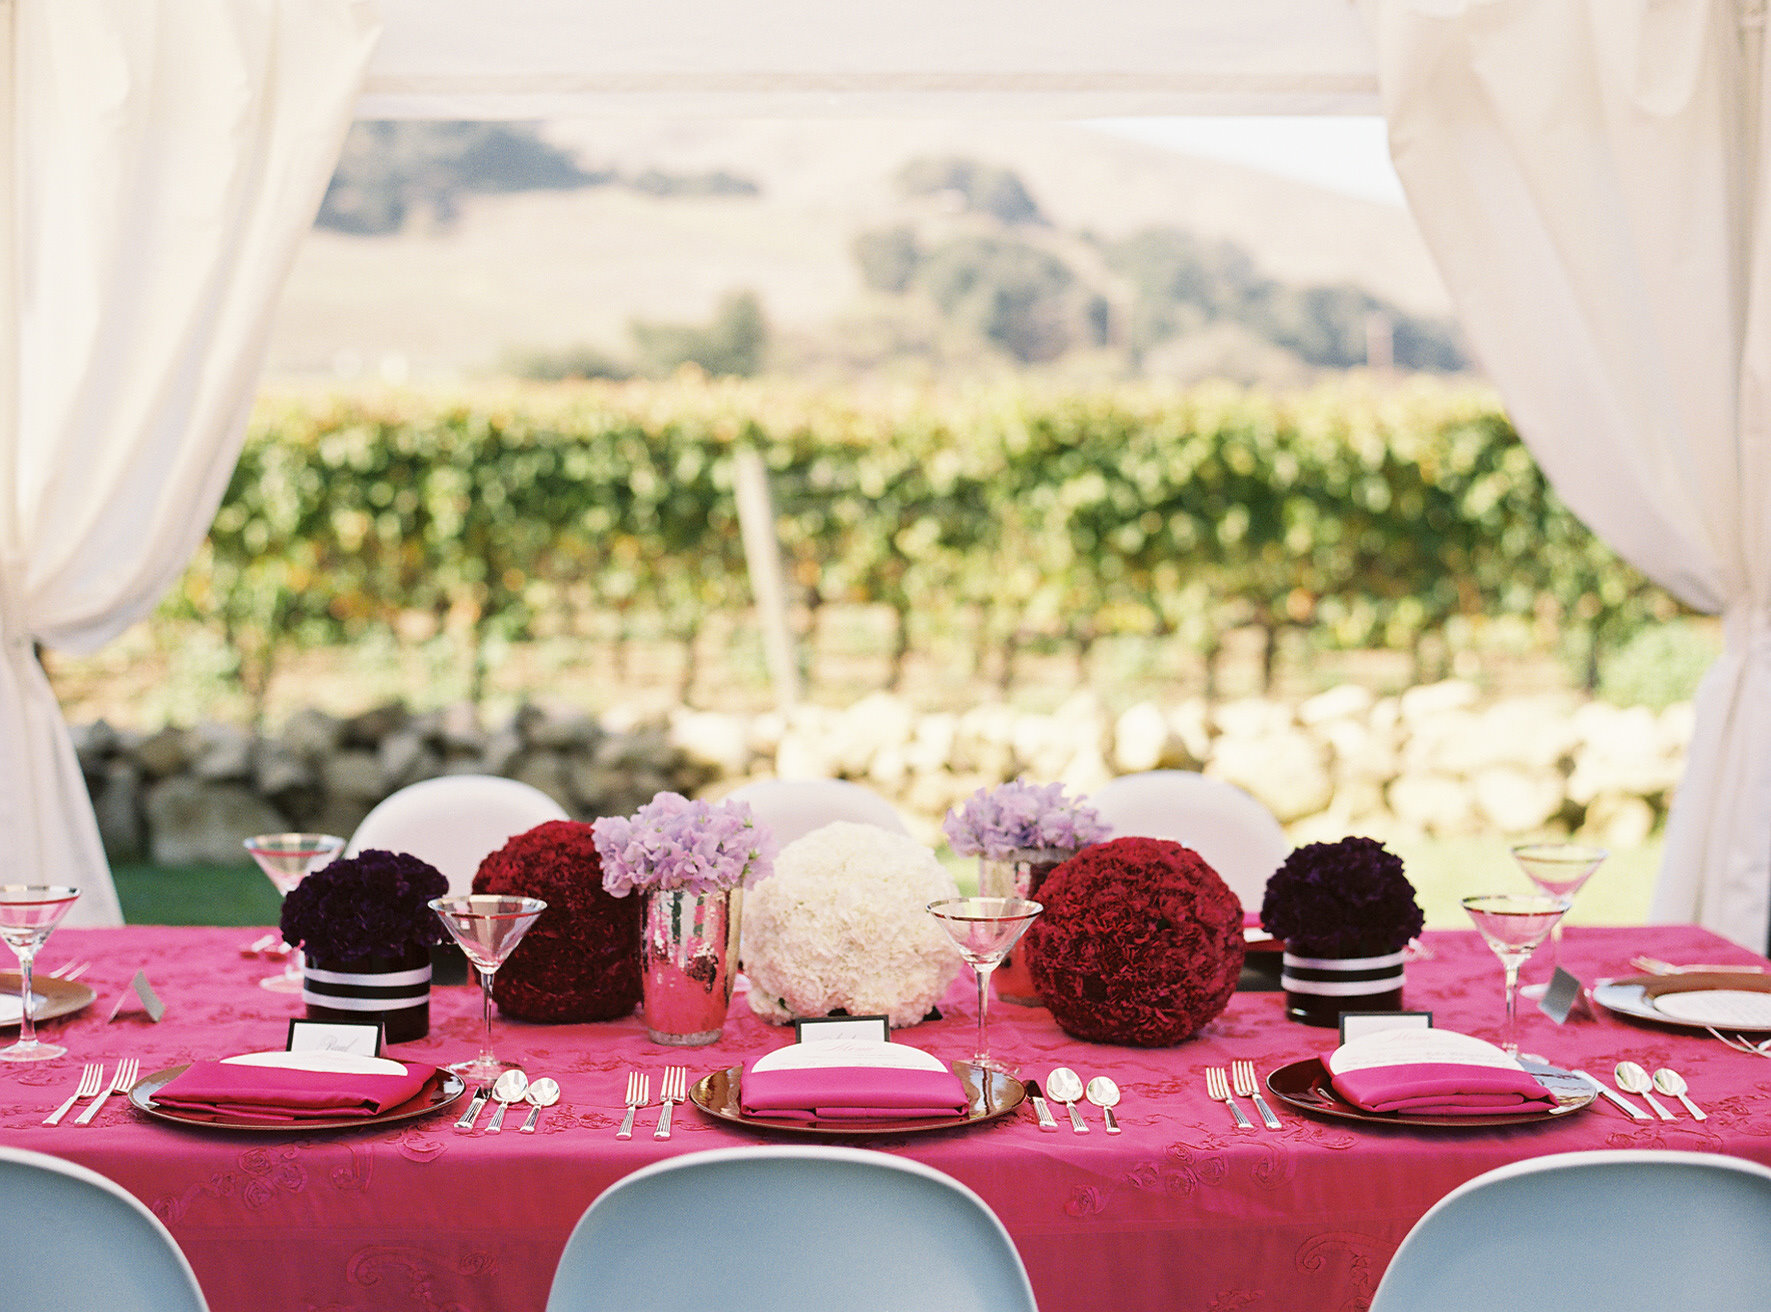 alegria-by-design-wedding-planner-coordination-santa-barbara-lafond-winery (4).jpg